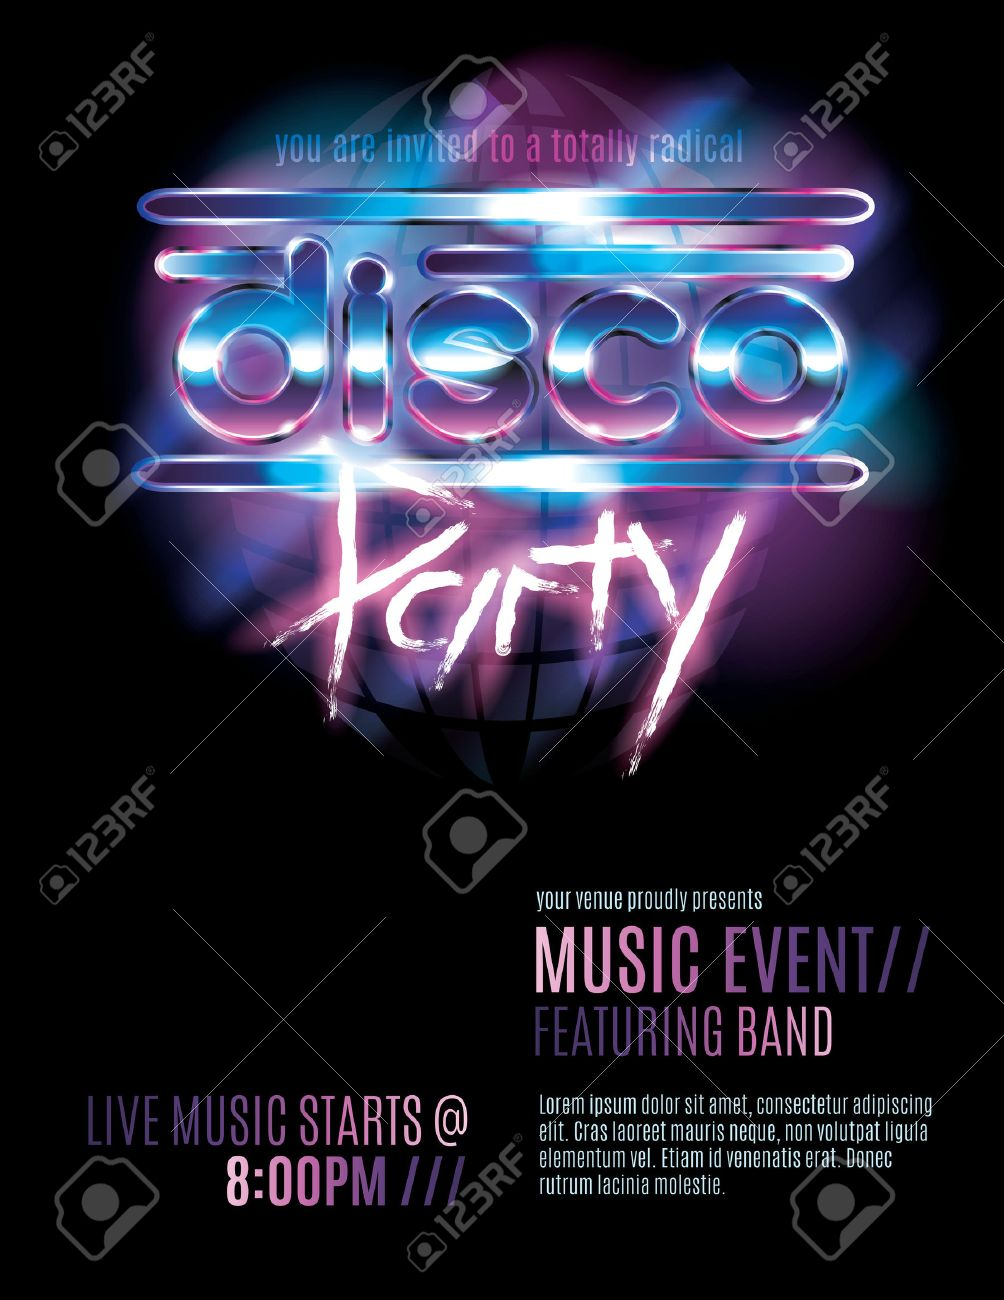 Shiny Retro S Party Or Disco Party Invitation Template Royalty - 80s party invitation template